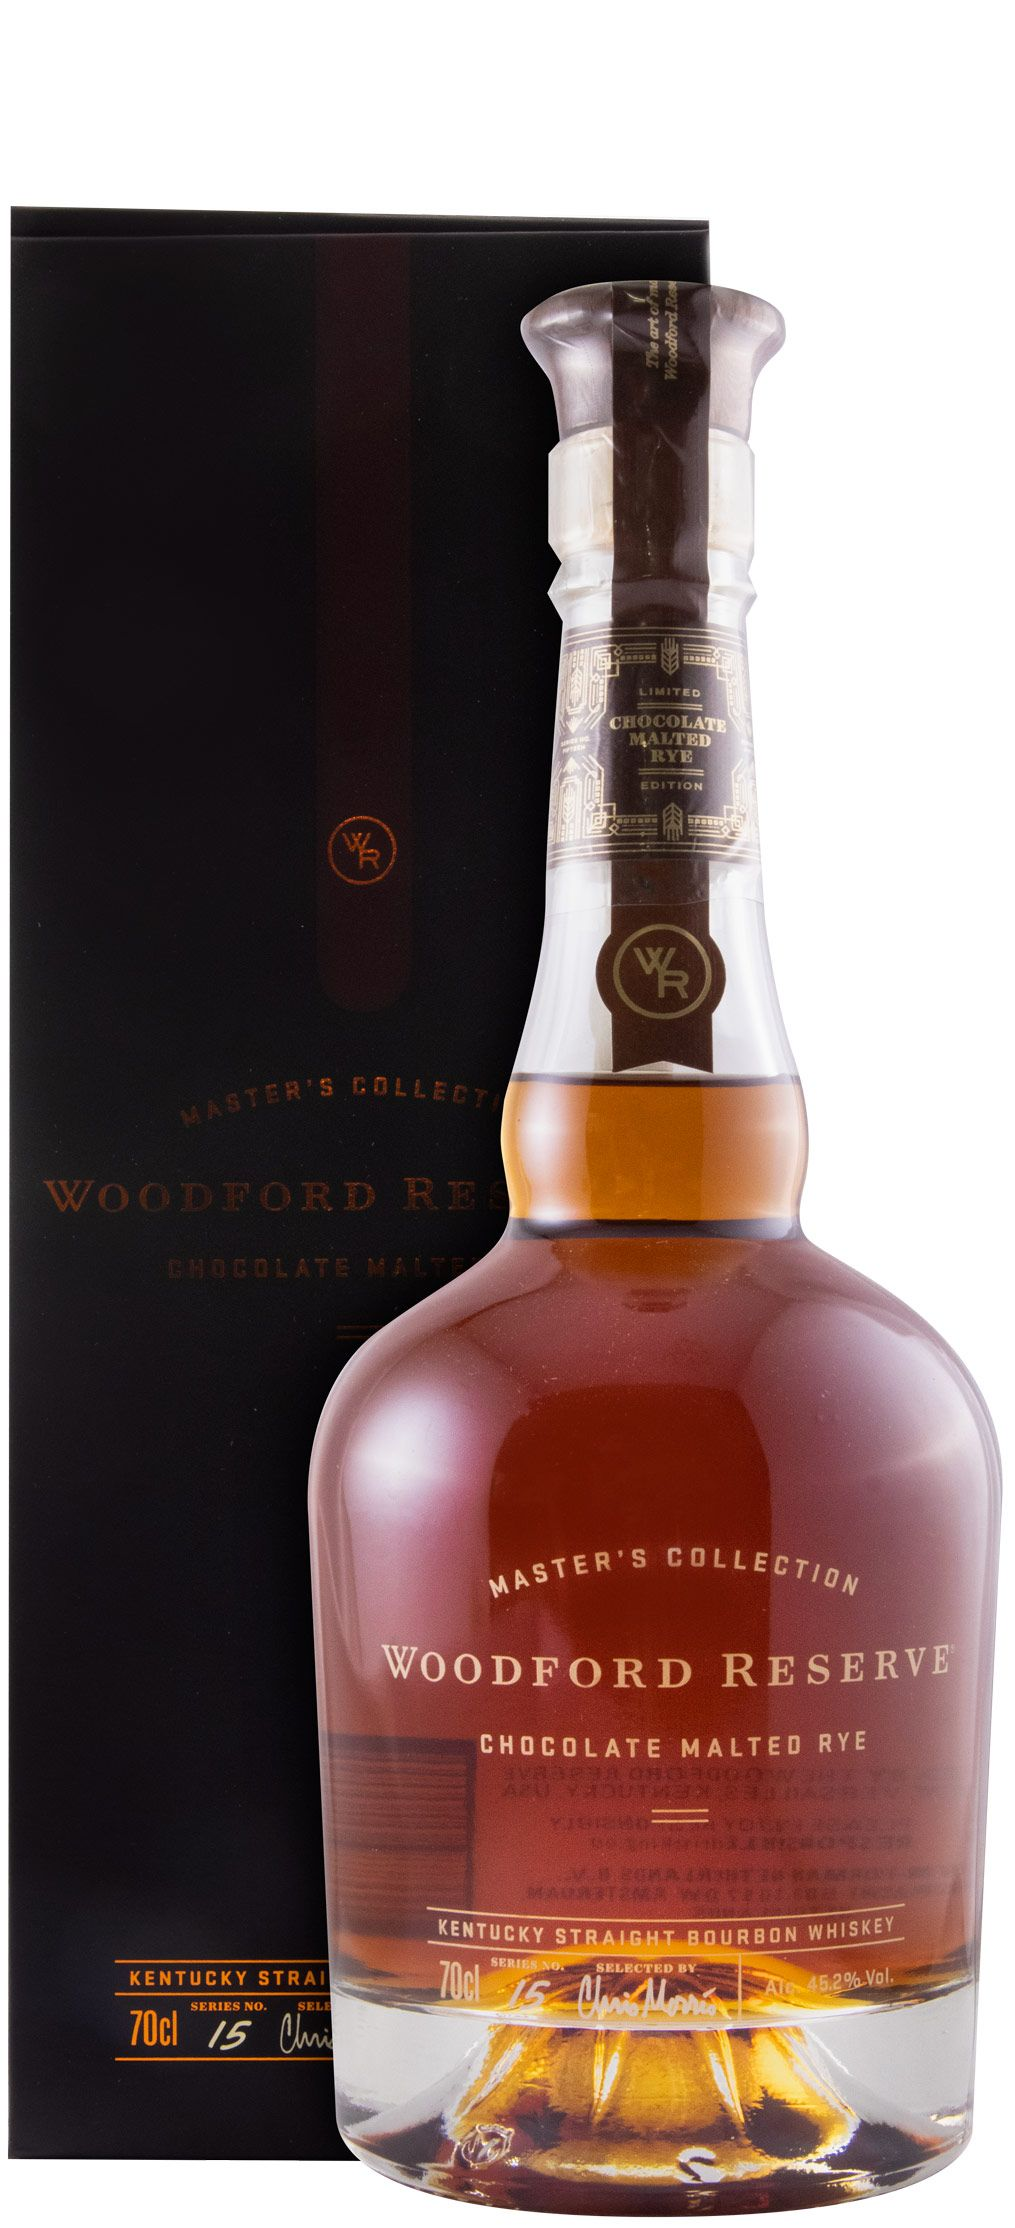 Woodford Reserve Chocolate Malted Rye